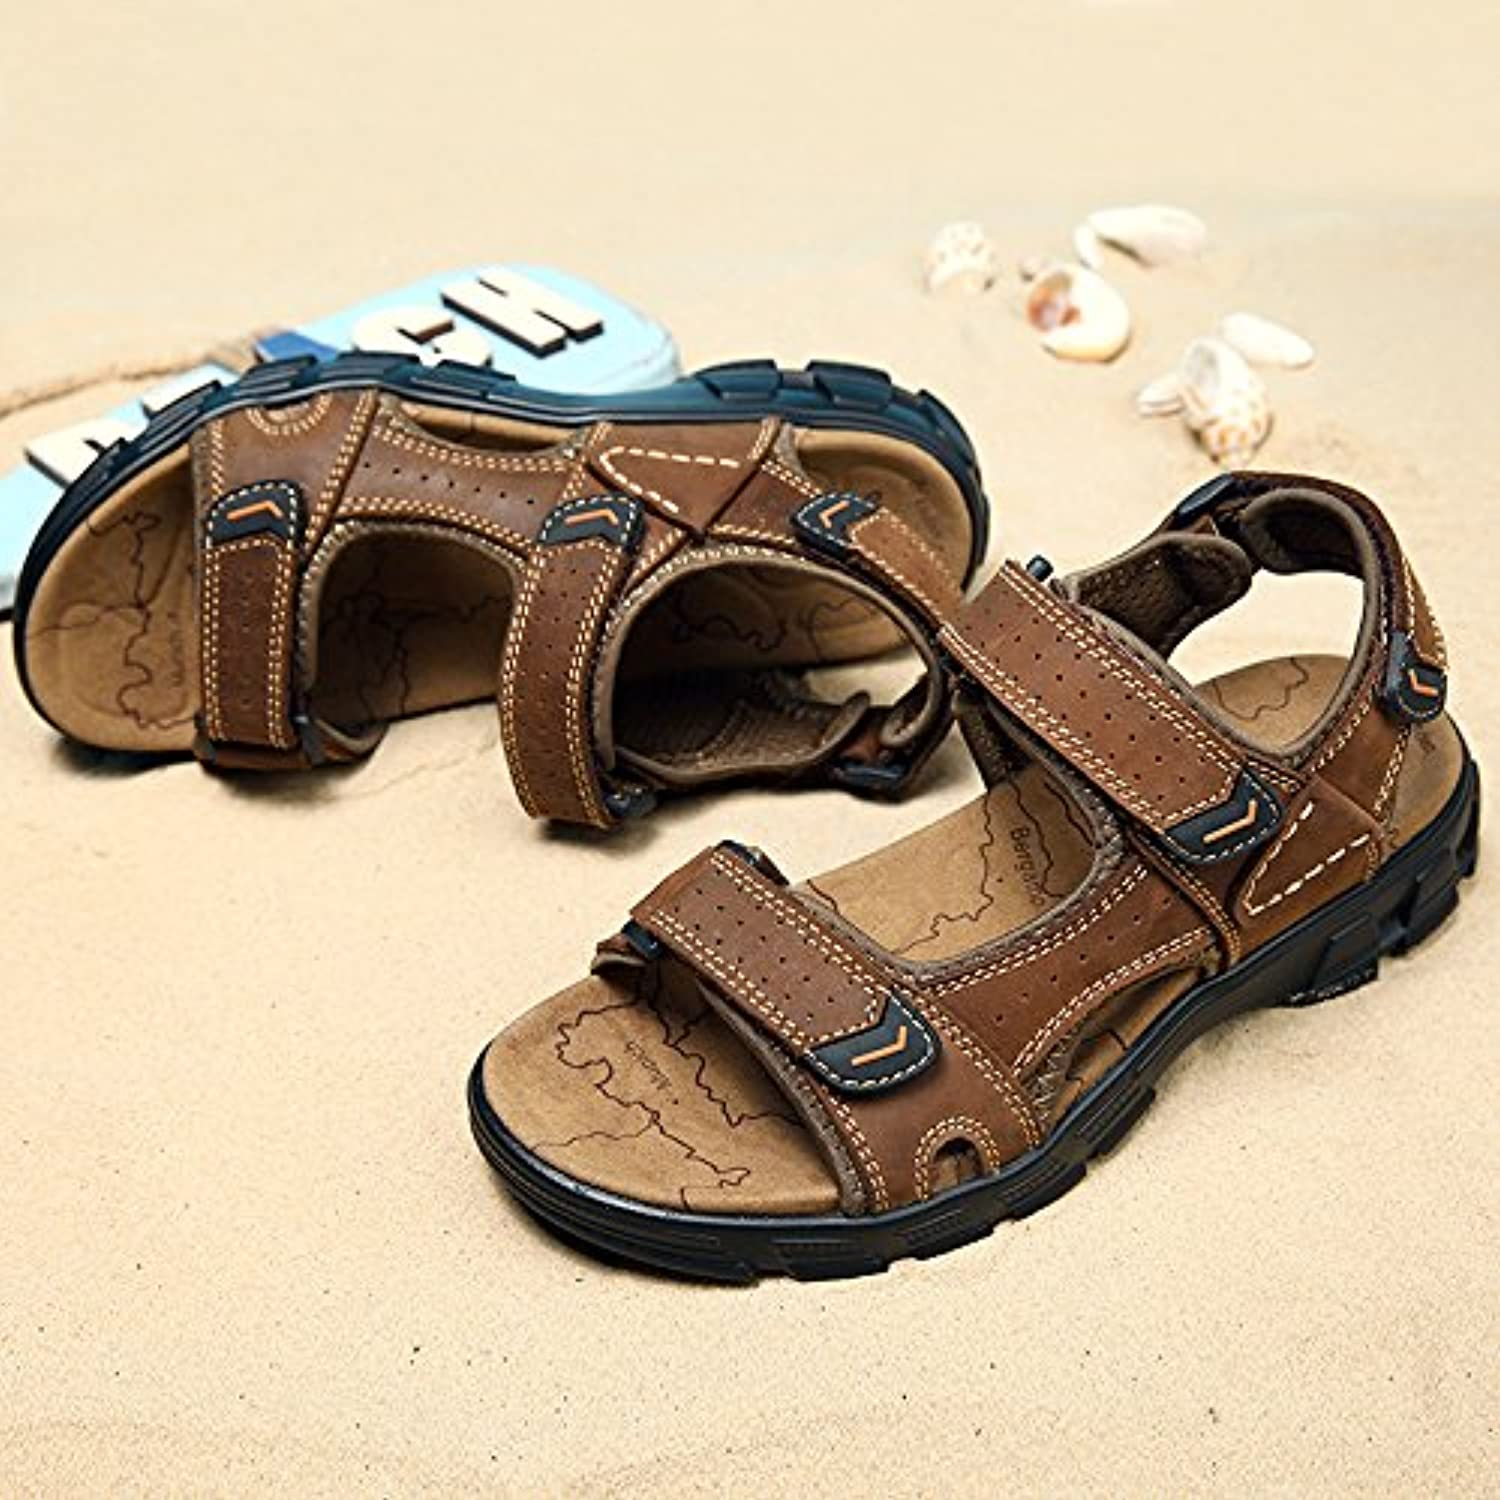 Outdoor Sandals Men's Sandals Summer New Toes Outdoor Sandals Light Fashionable Comfortable and Comfortable Sports shoes Standard Sneaker Code Forty